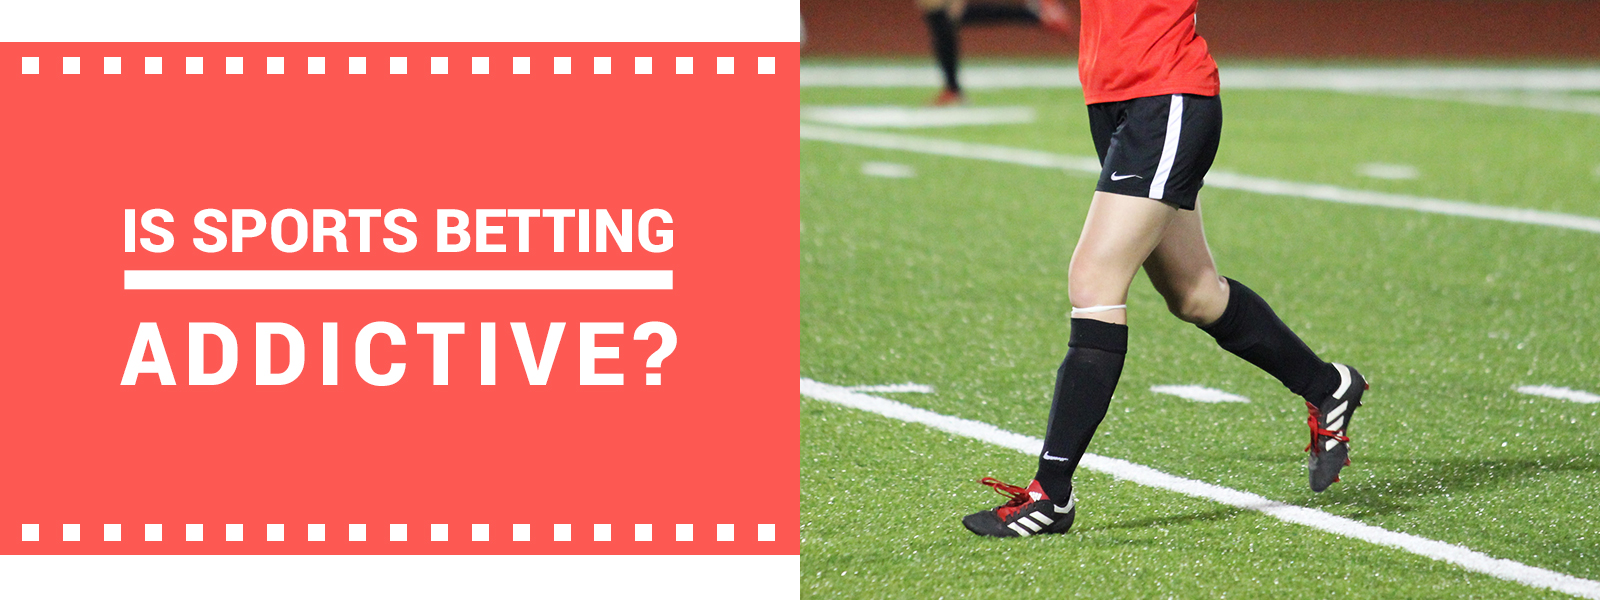 SoccerTipsters Blog   Is Sports Betting Addictive?